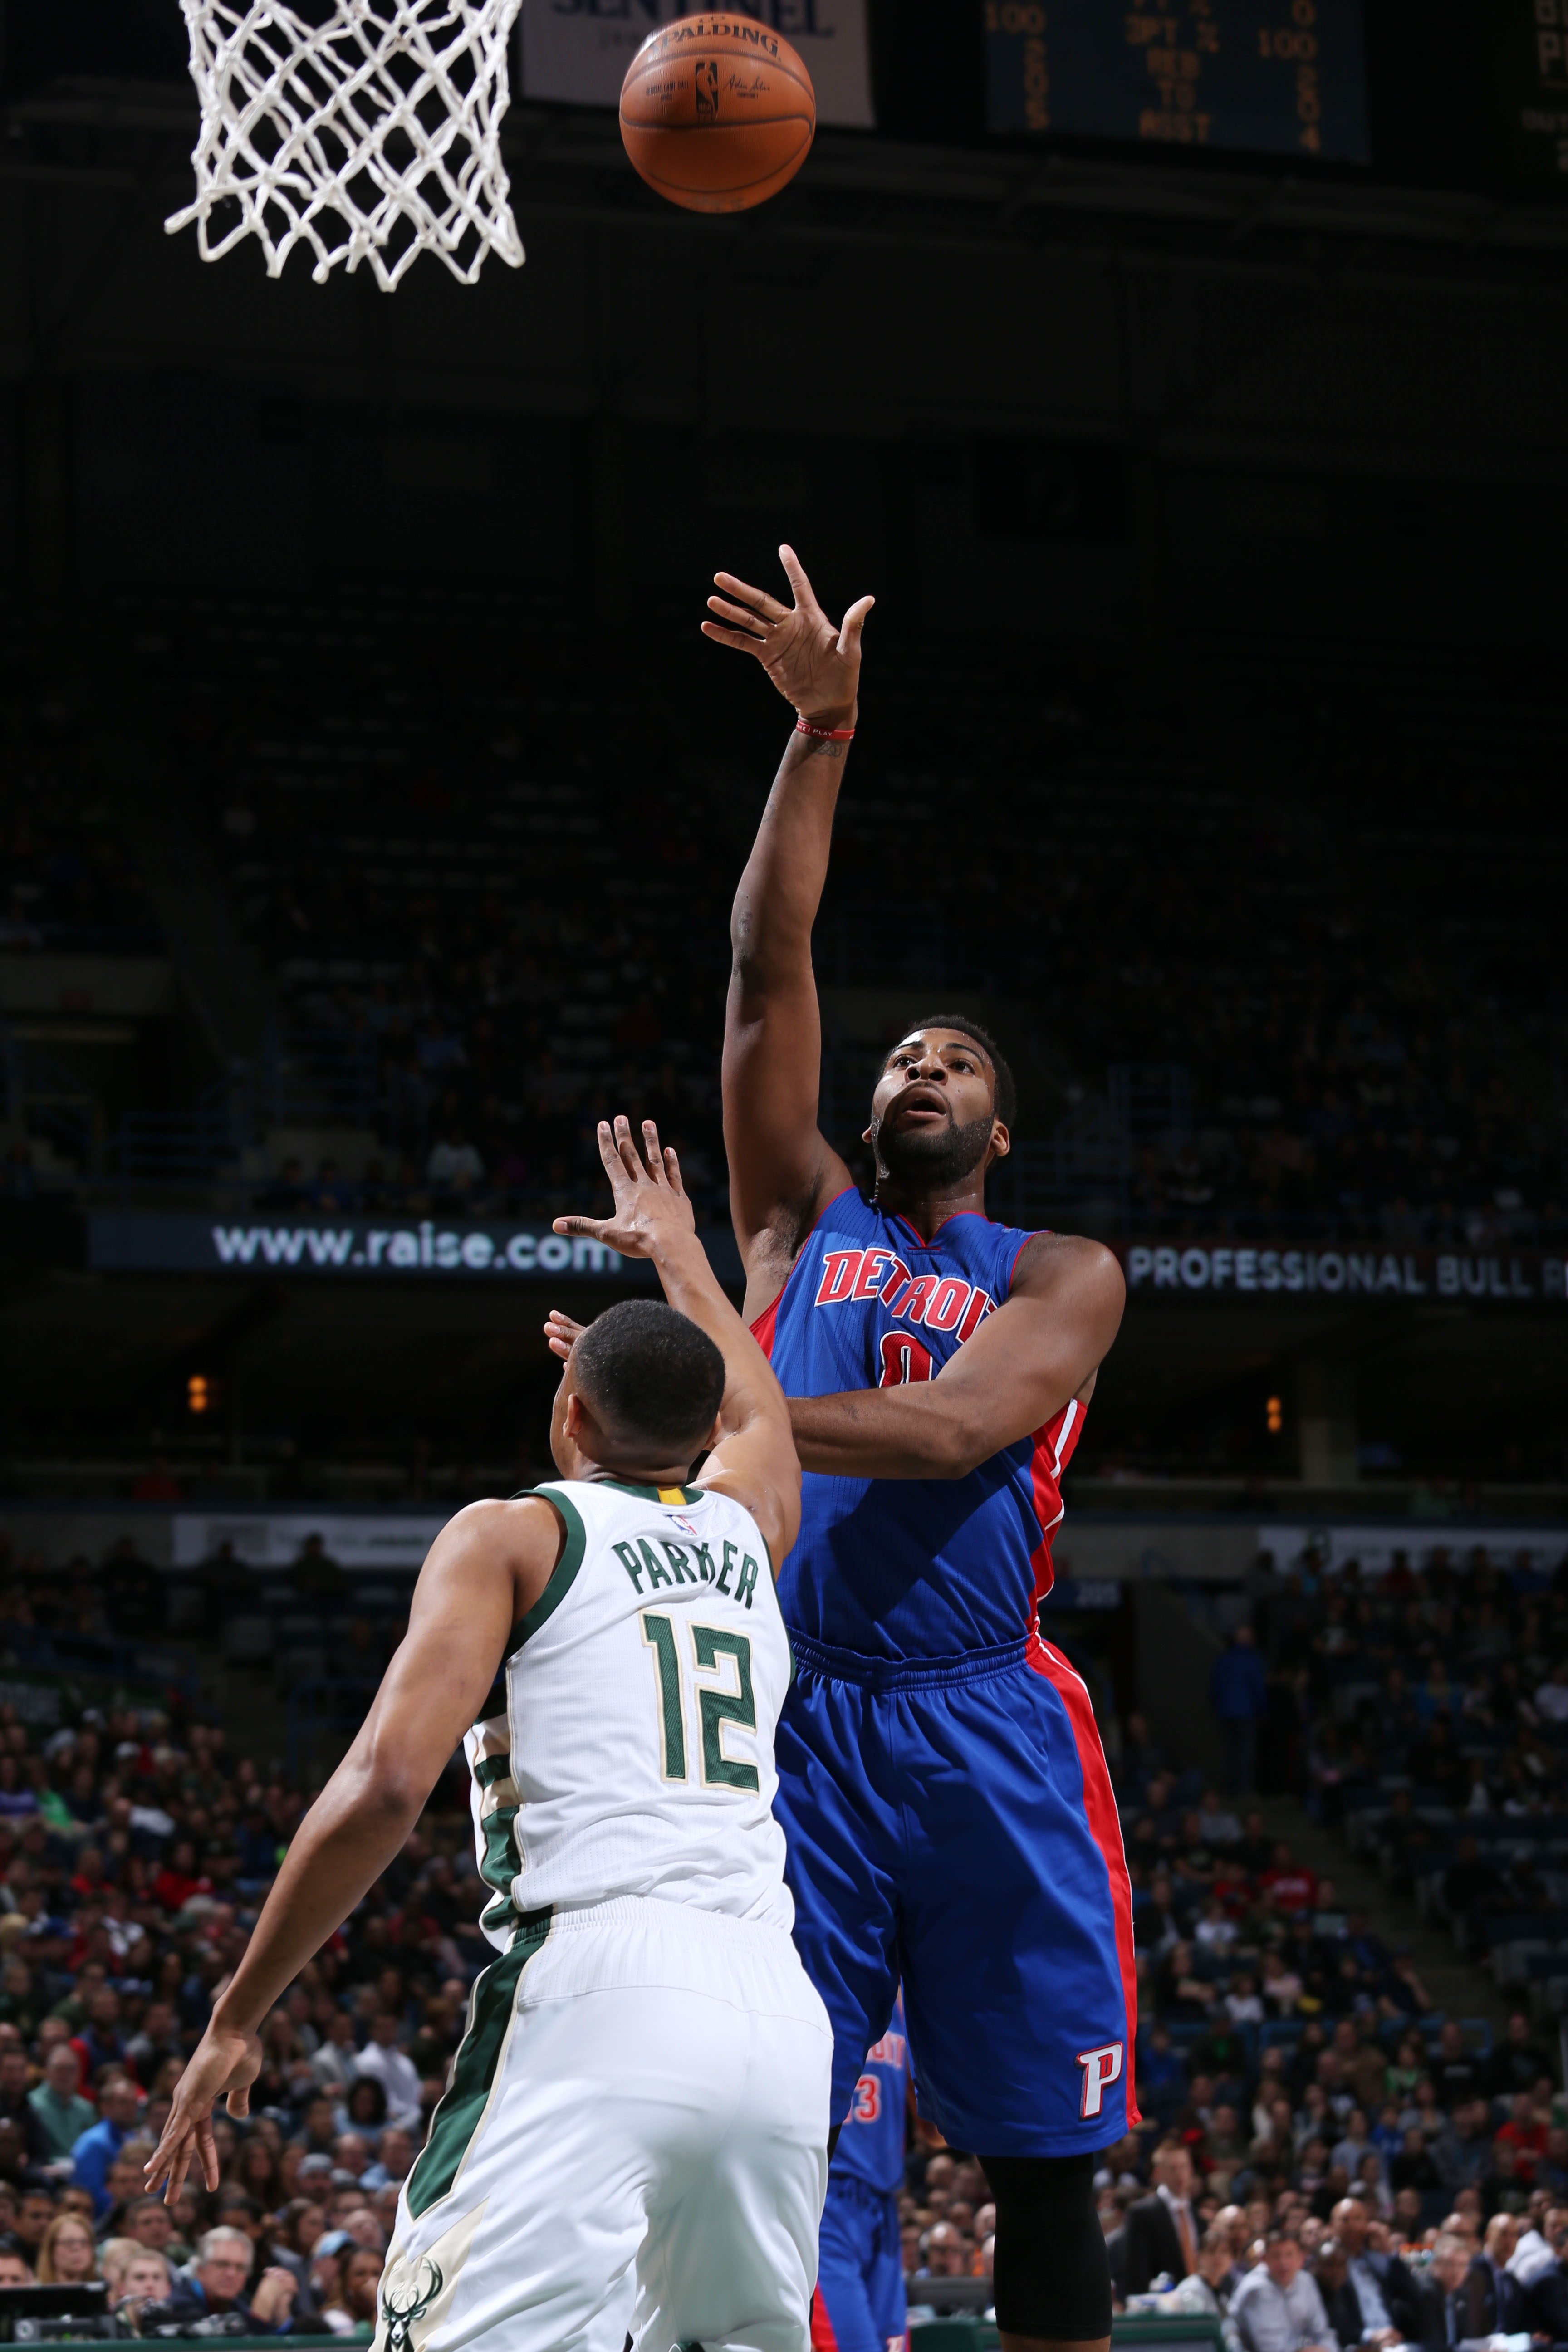 Milwaukee, WI - FEBRUARY 28: Andre Drummond #0 of the Detroit Pistons shoots the ball against the Milwaukee Bucks on February 28, 2016 at the BMO Harris Bradley Center in Milwaukee, Wisconsin. (Photo by Gary Dineen/NBAE via Getty Images)